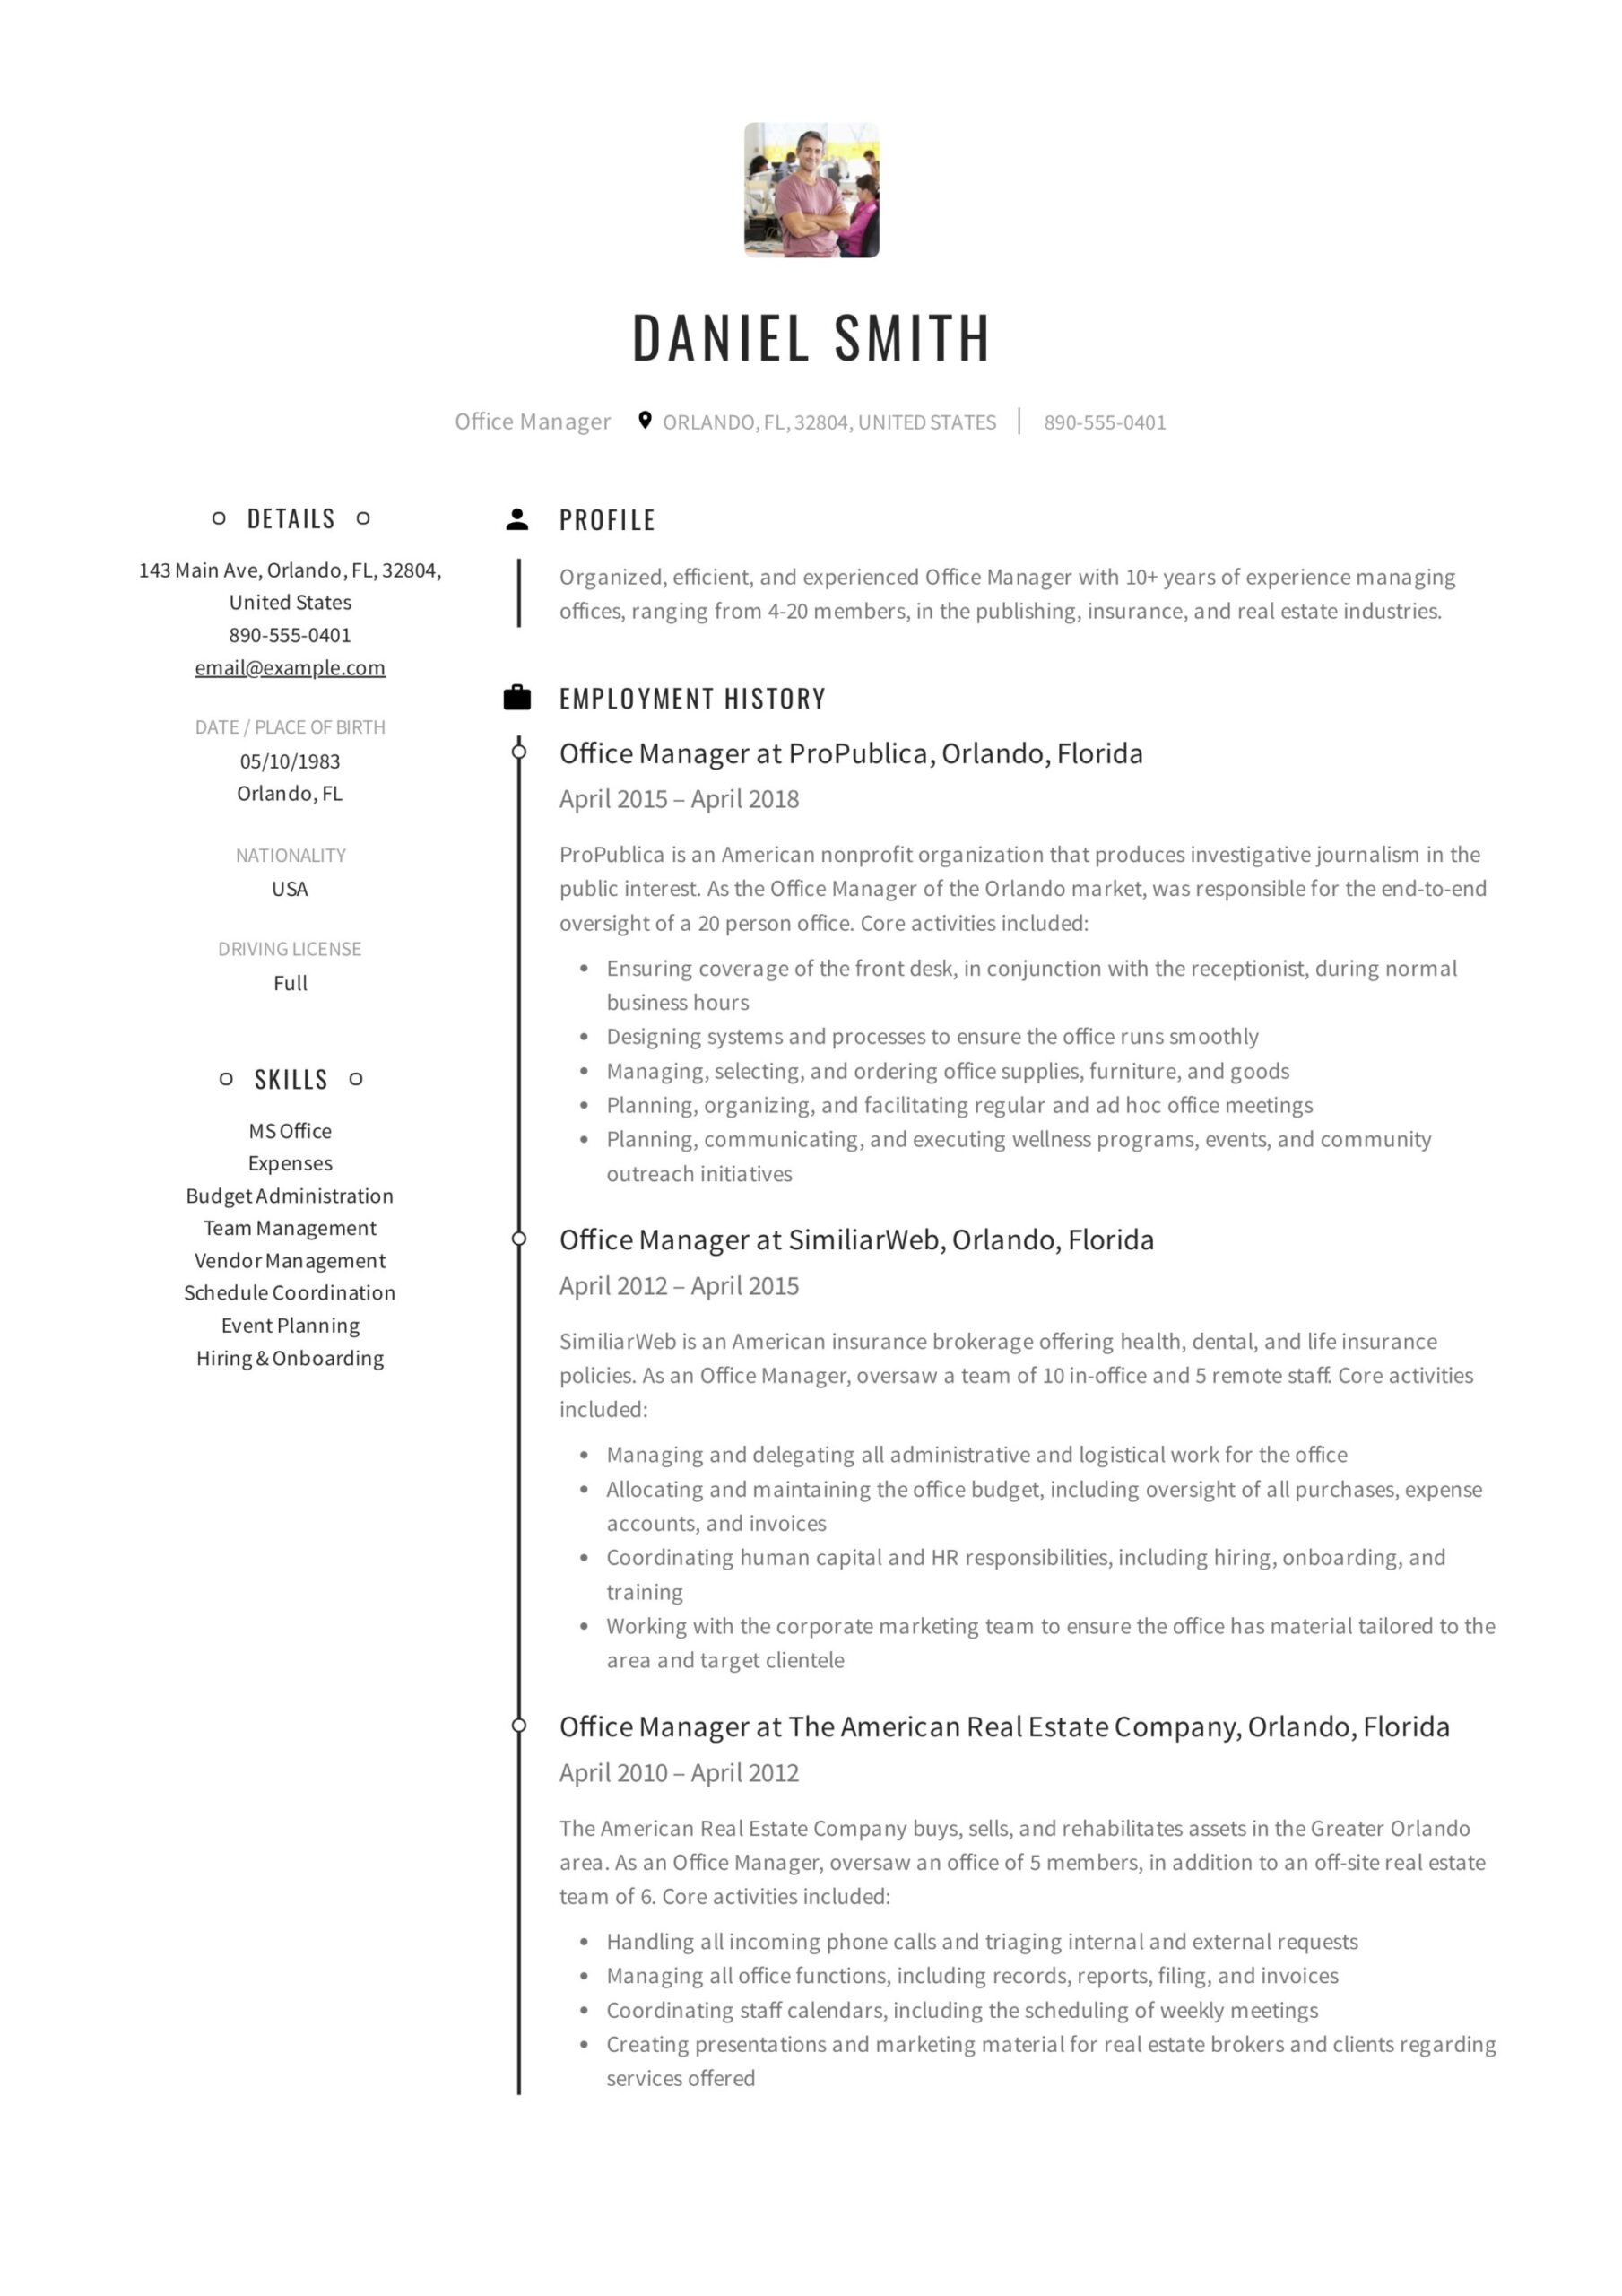 office manager resume guide samples pdf examples of great resumes example elevator Resume Examples Of Great Resumes 2020